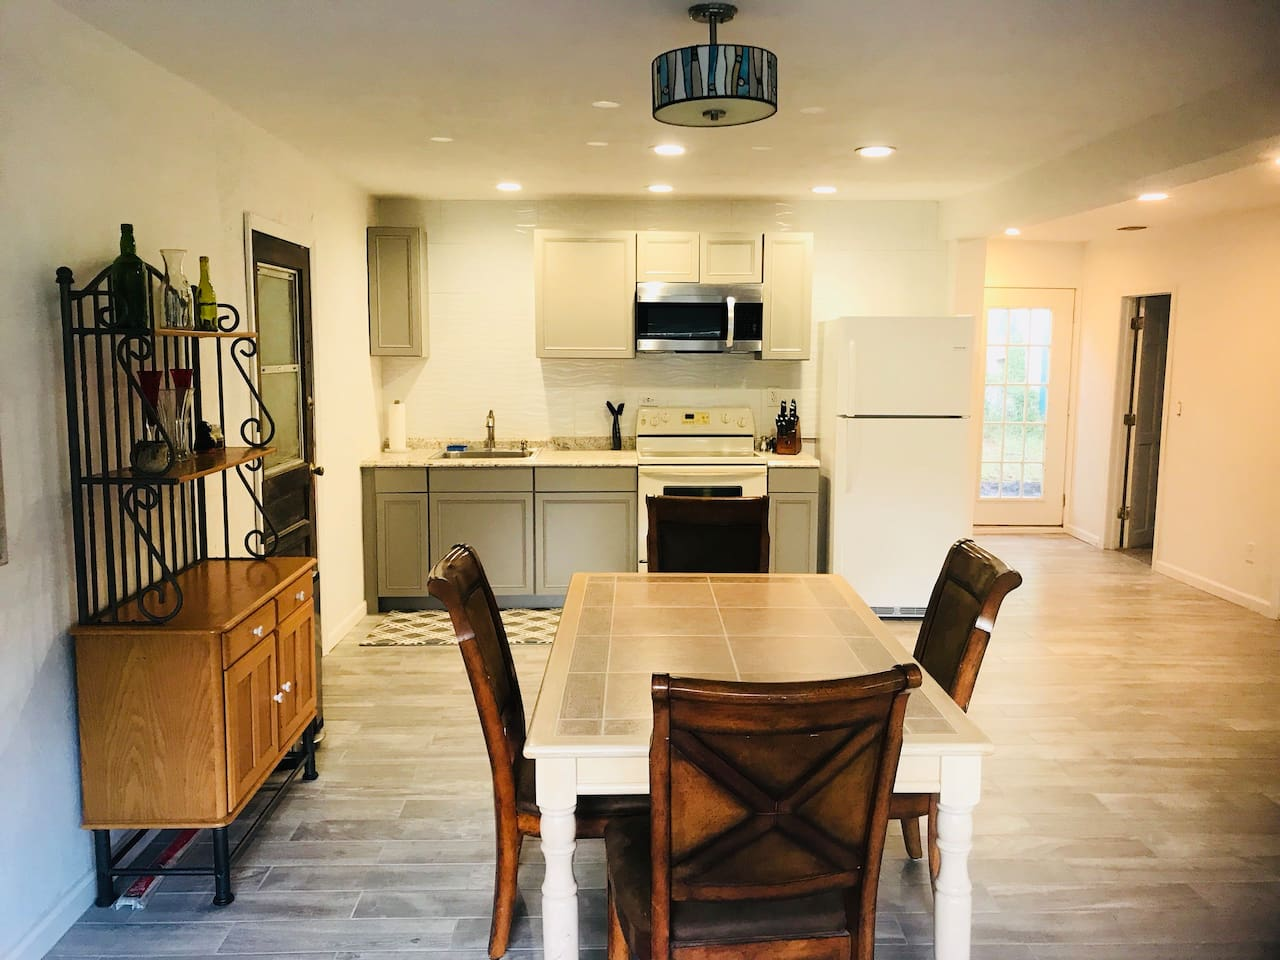 It is very clean-open kitchen and dining area